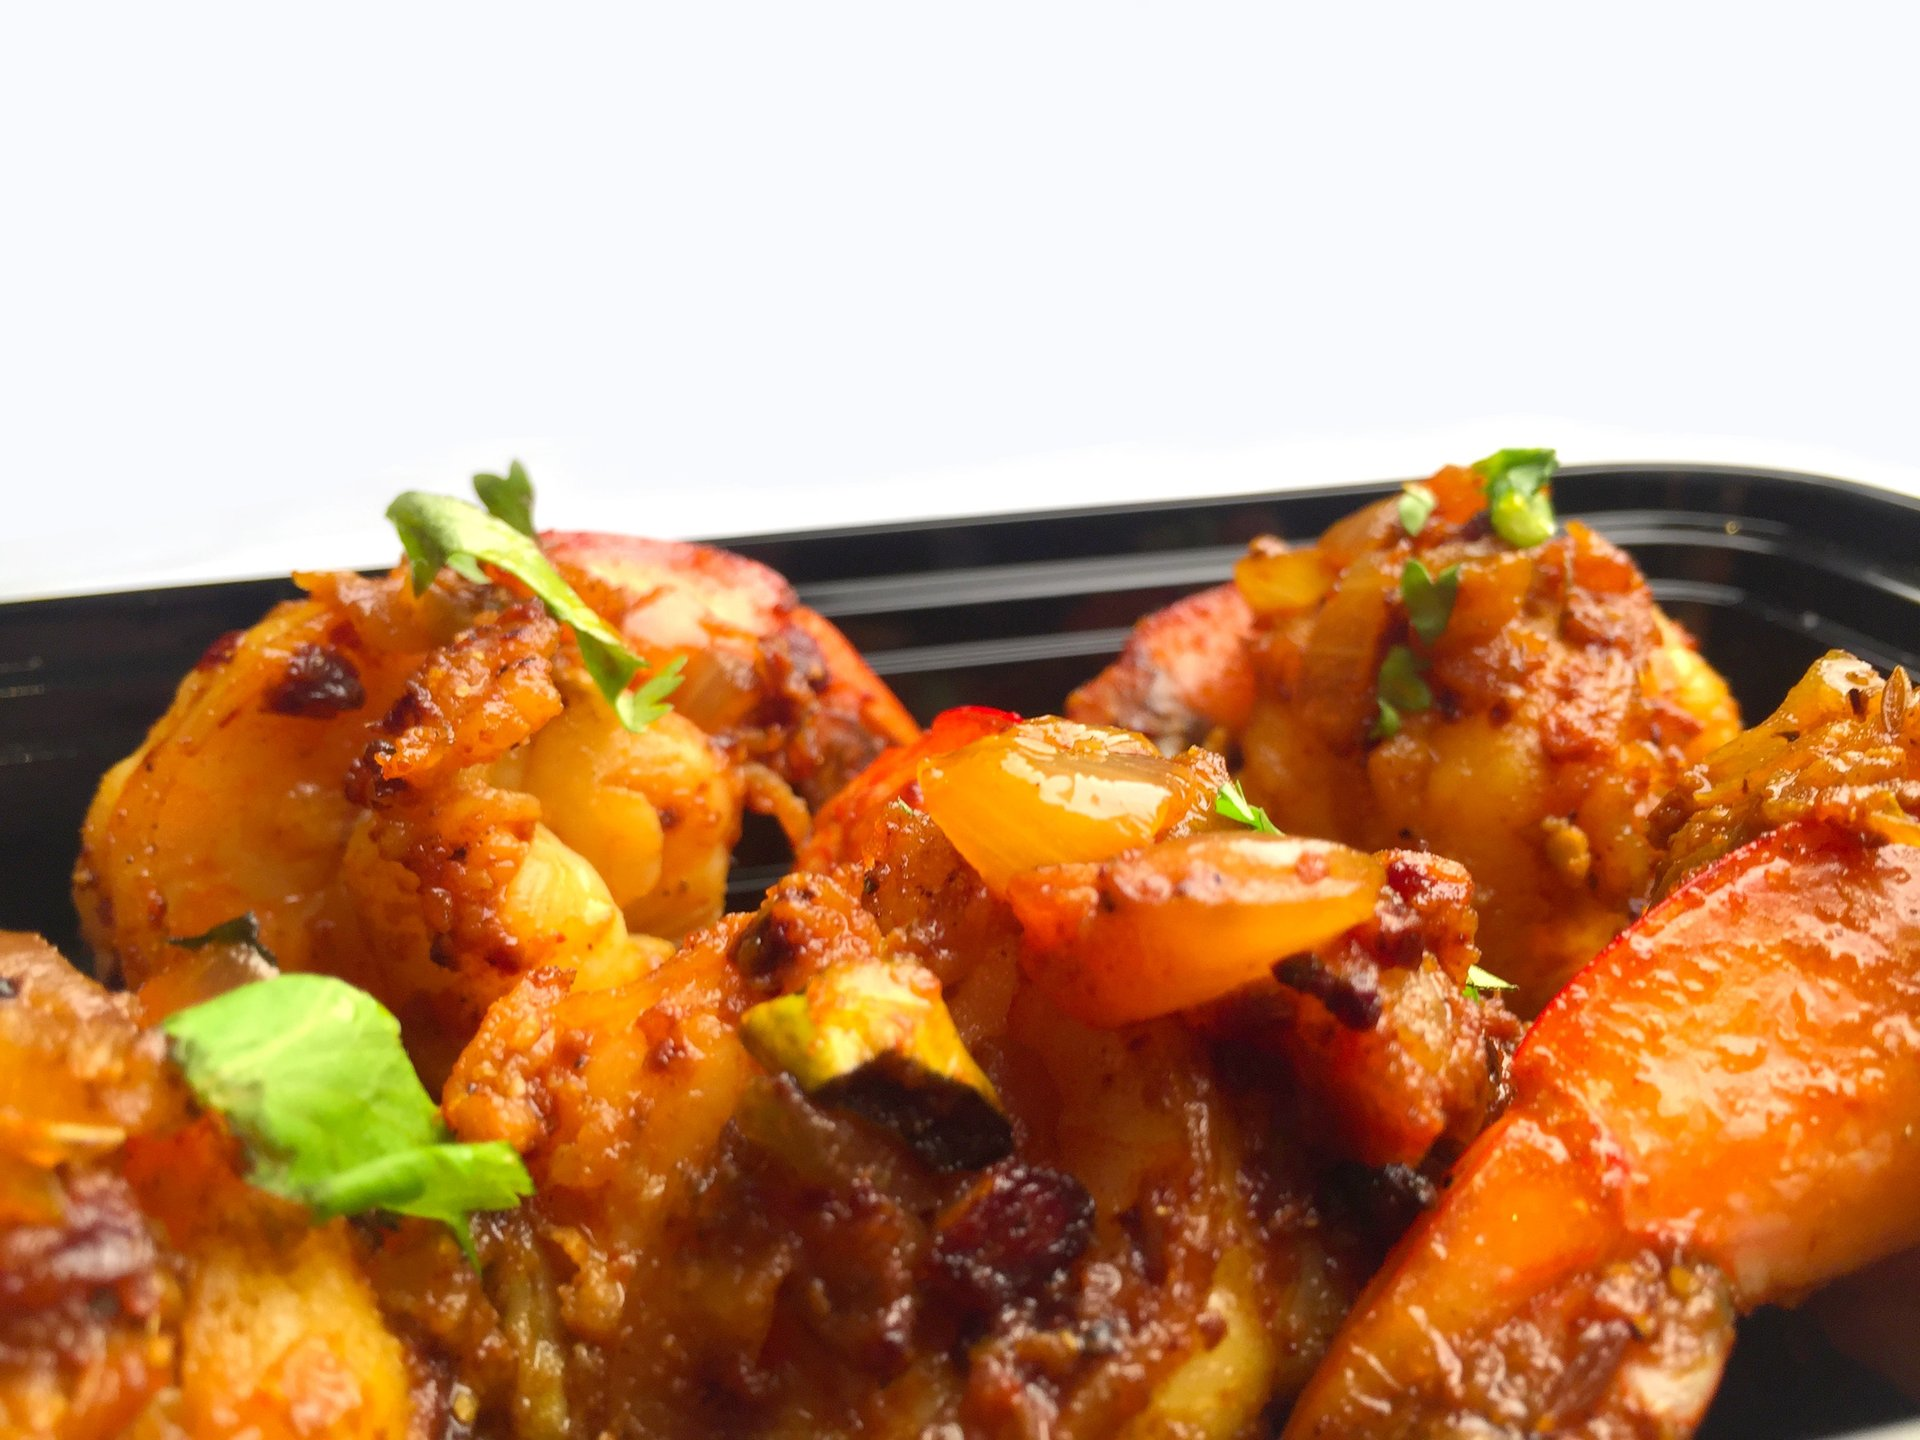 Zaika Indian Express is serving Indian food fast, without compromising its authentic flavor.